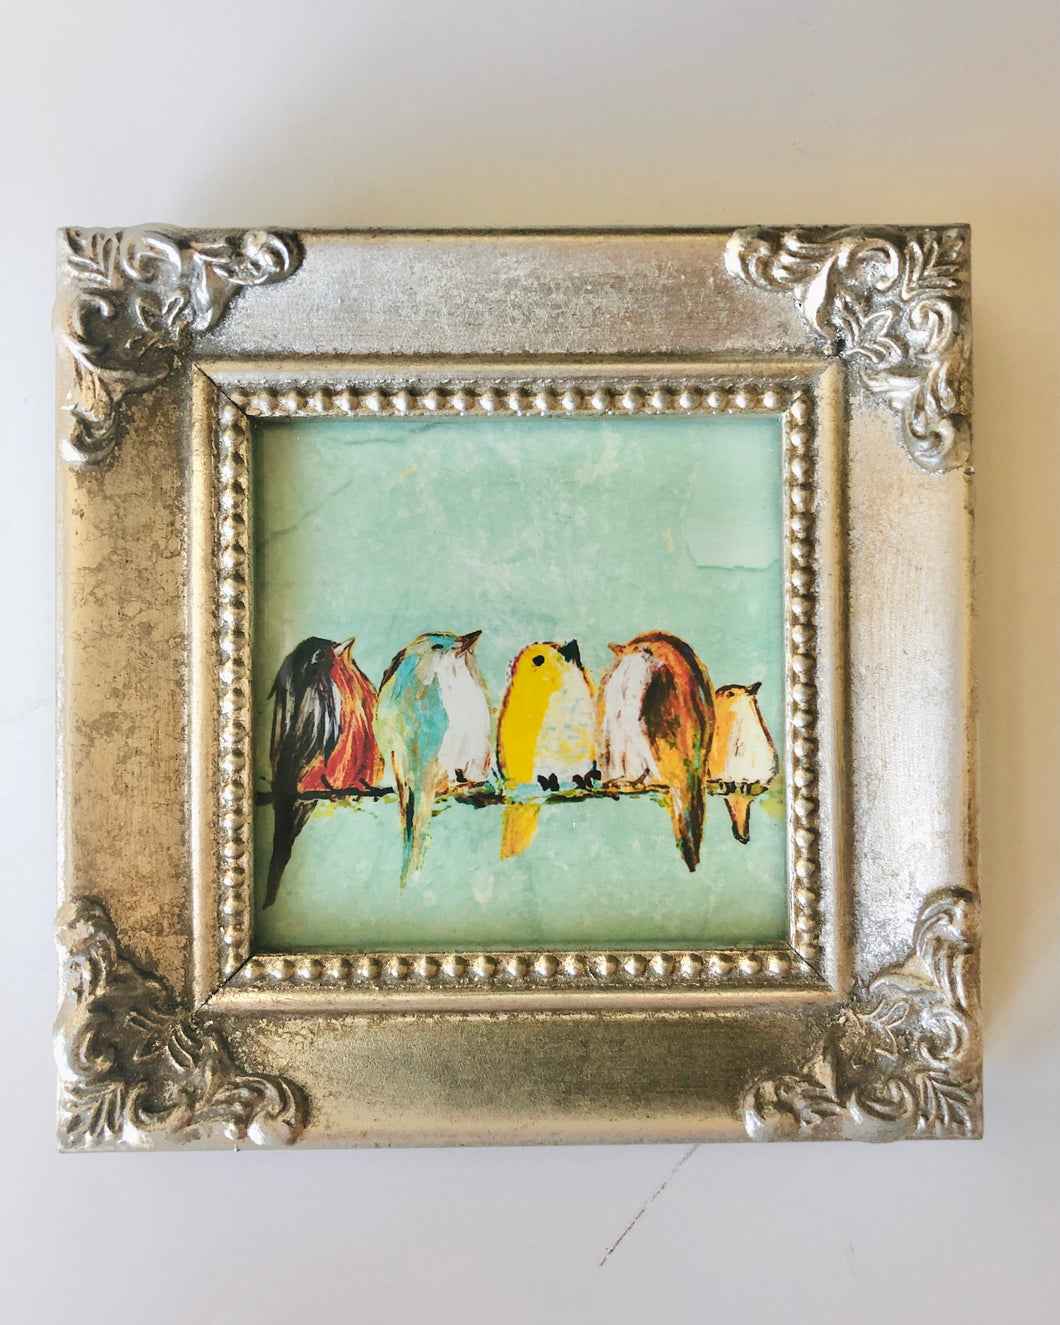 We Are The World - Mini Framed Print of birds on a wire